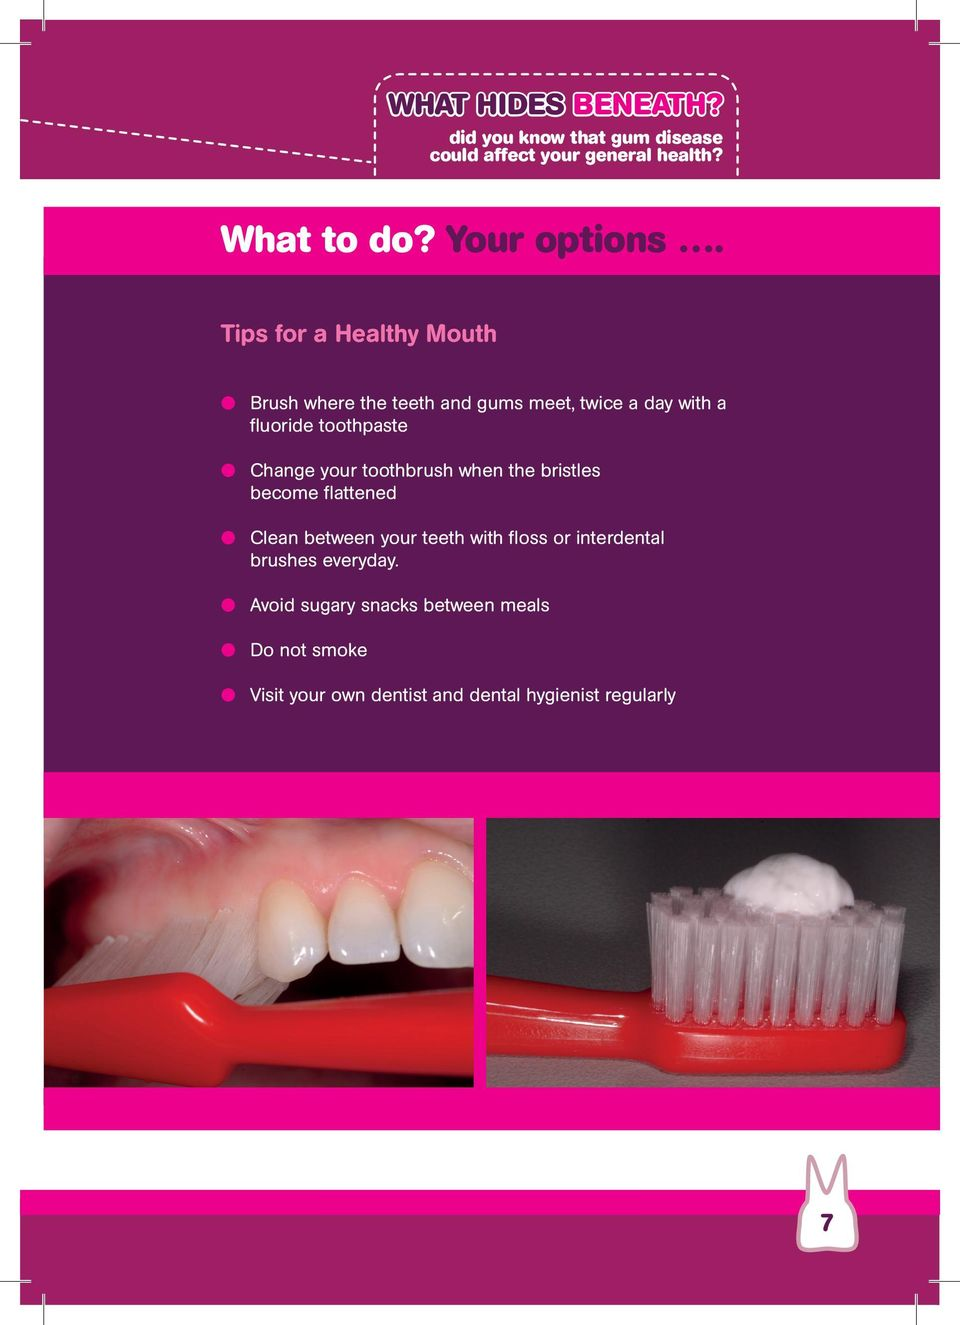 your toothbrush when the bristles become flattened Clean between your teeth with floss or interdental brushes